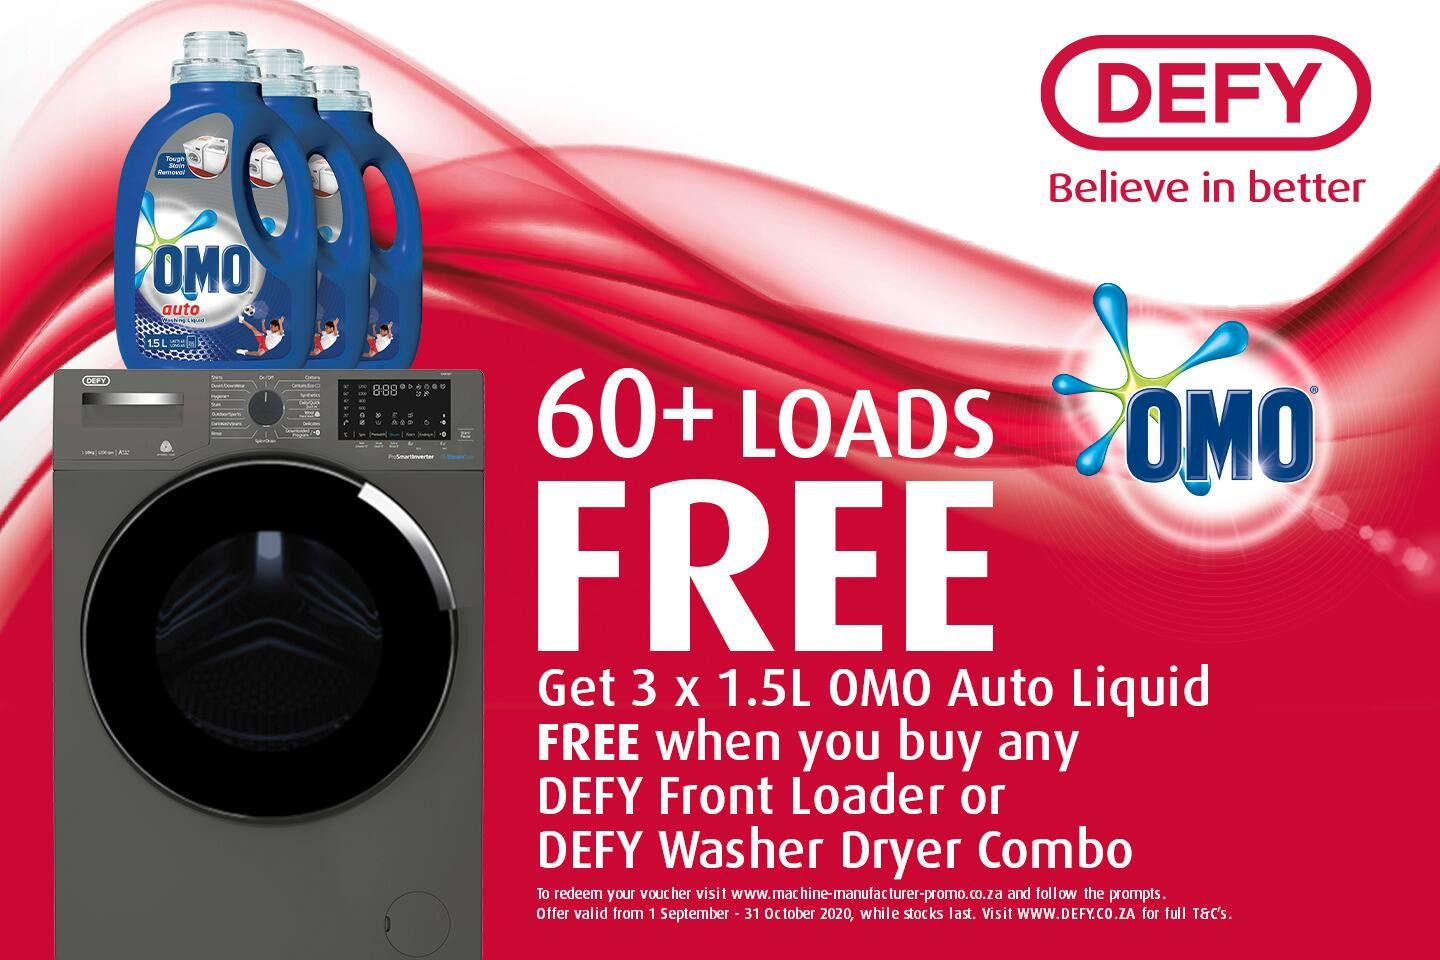 DEFY x OMO promo with details specific to promo